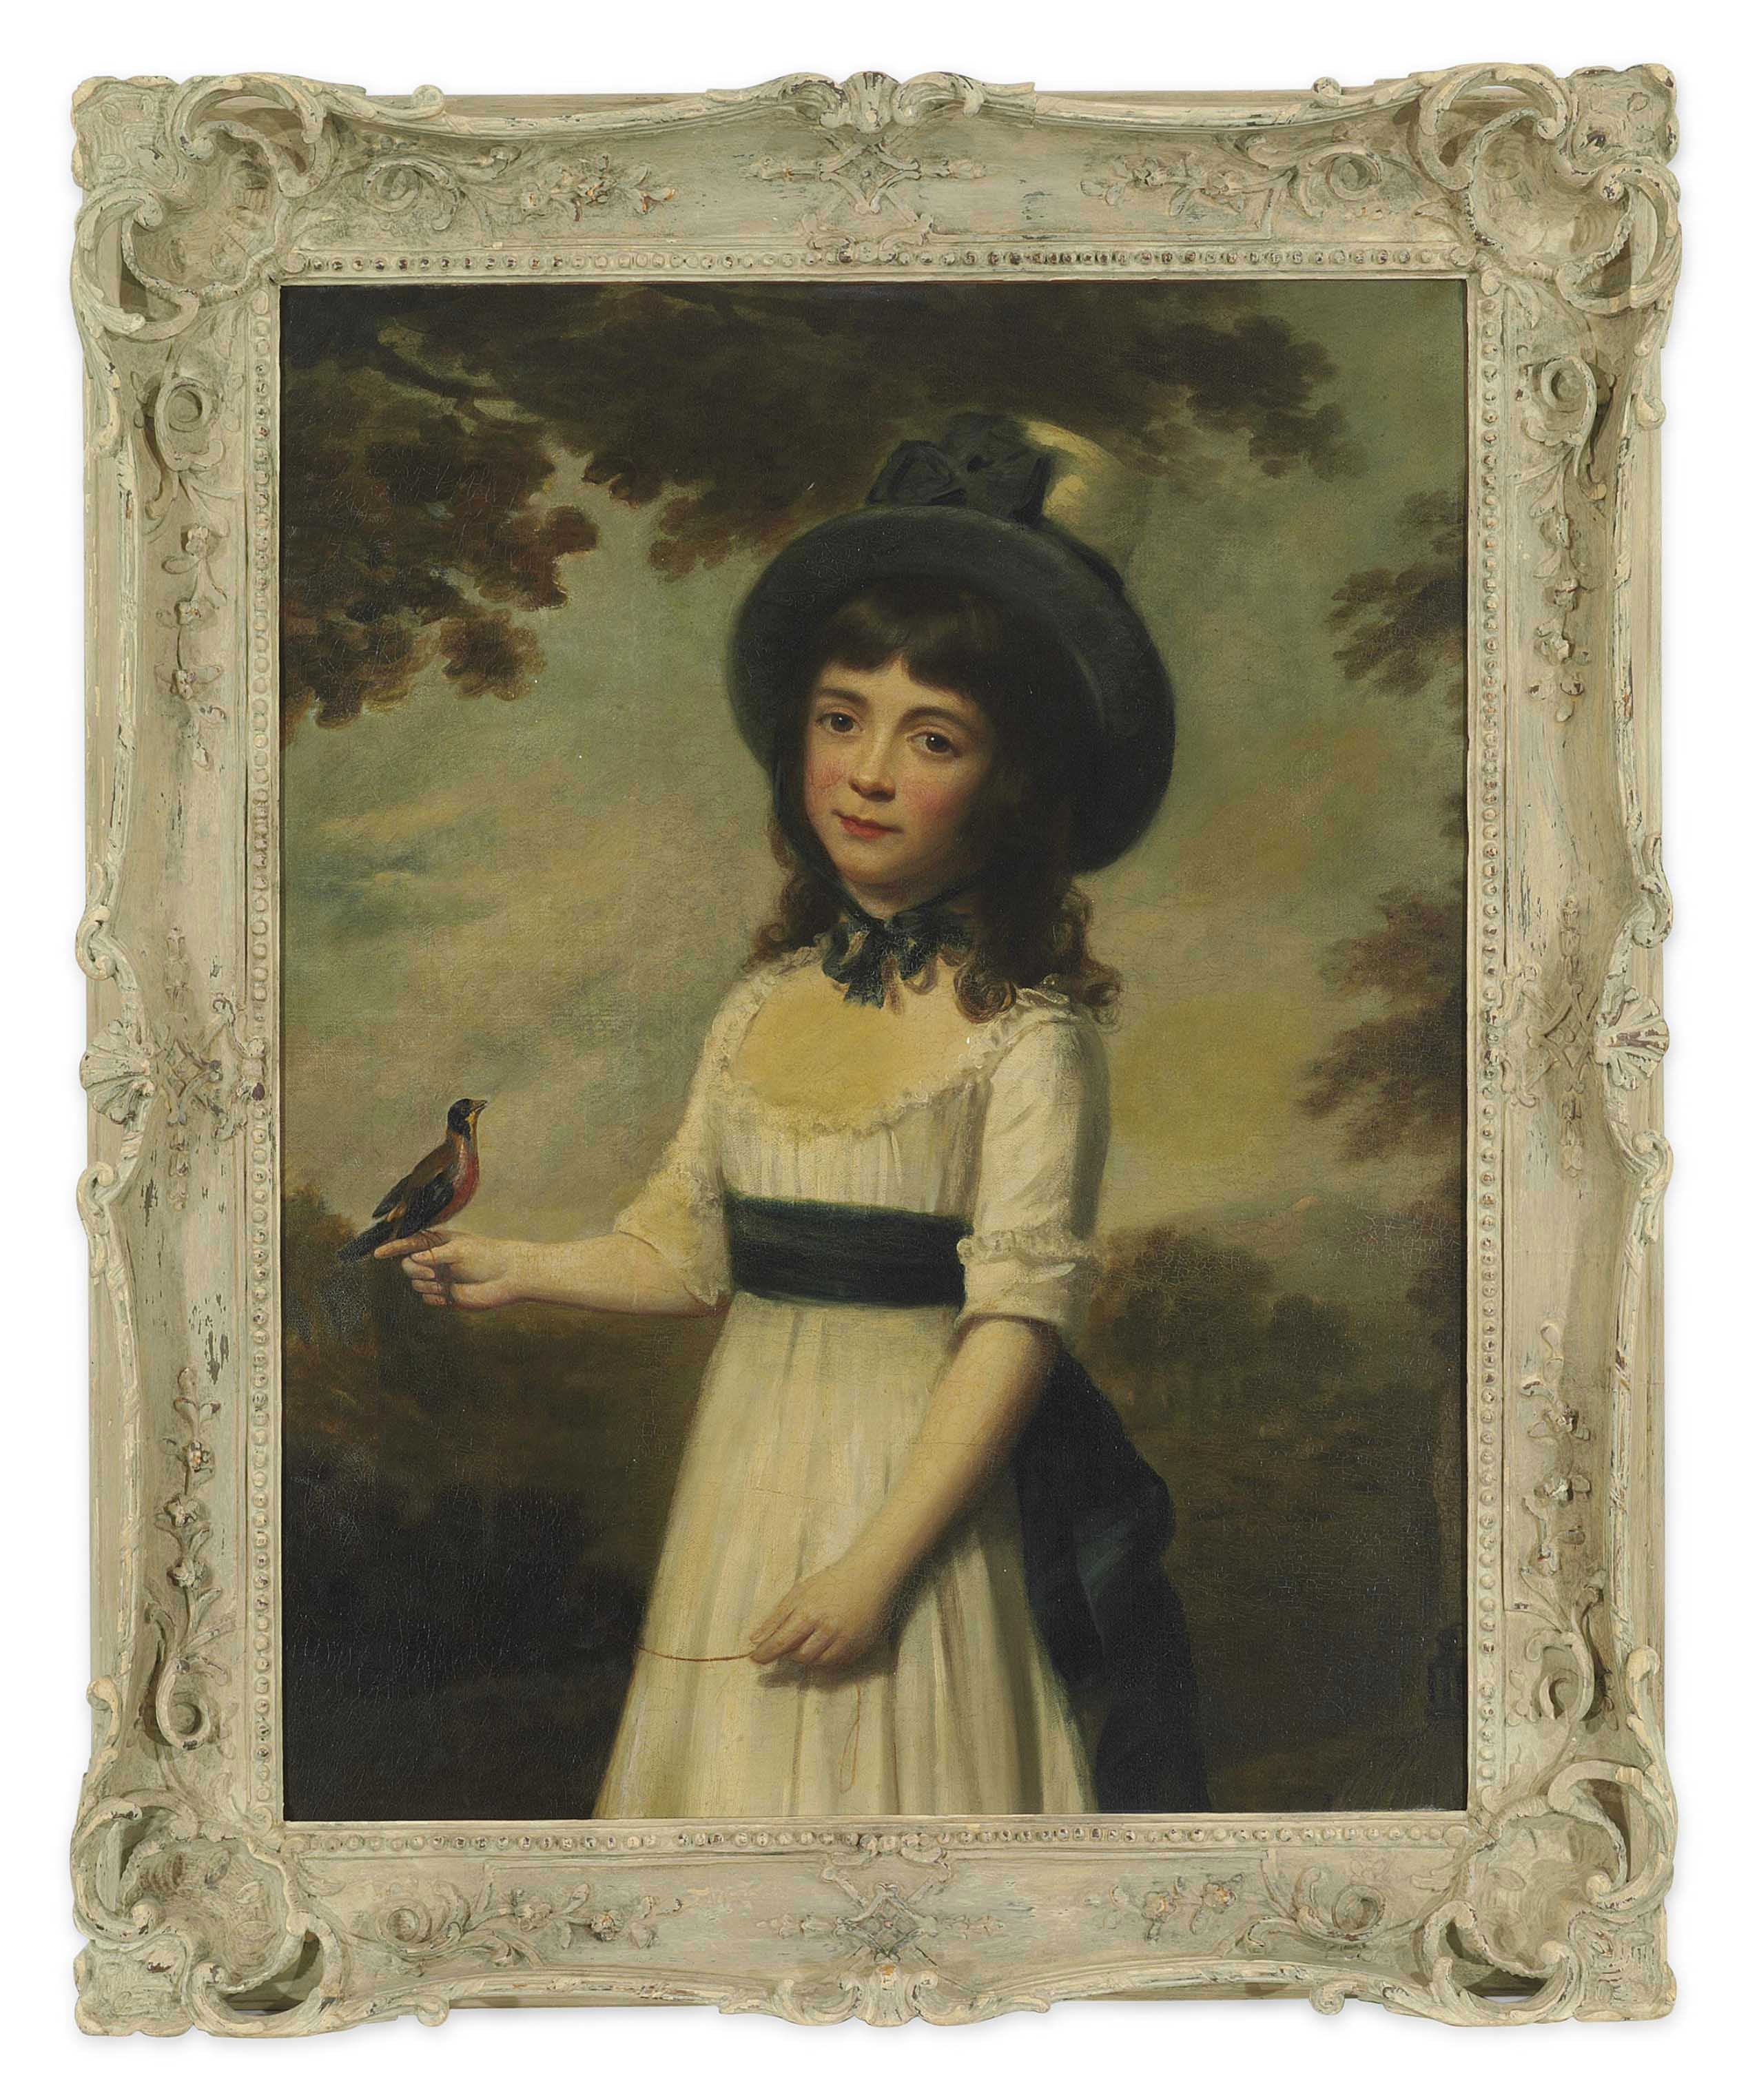 Portrait of Miss Gardner, three-quarter-length, in a white dress with a blue sash and a hat, a bird on a string perched on her right hand, a bird cage to her side, in a landscape